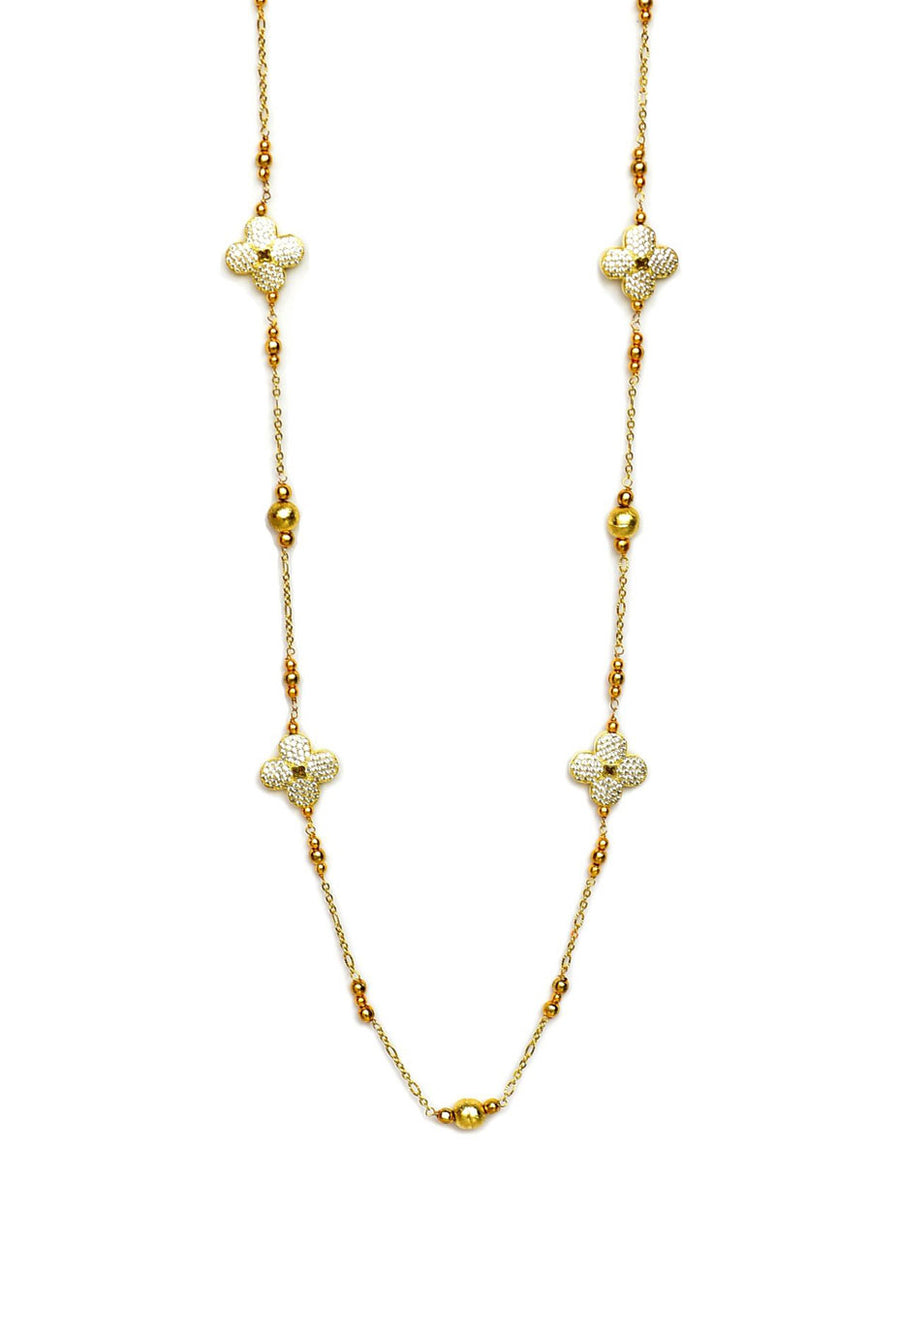 Floral Cubic Zirconia Necklace Gold Finish